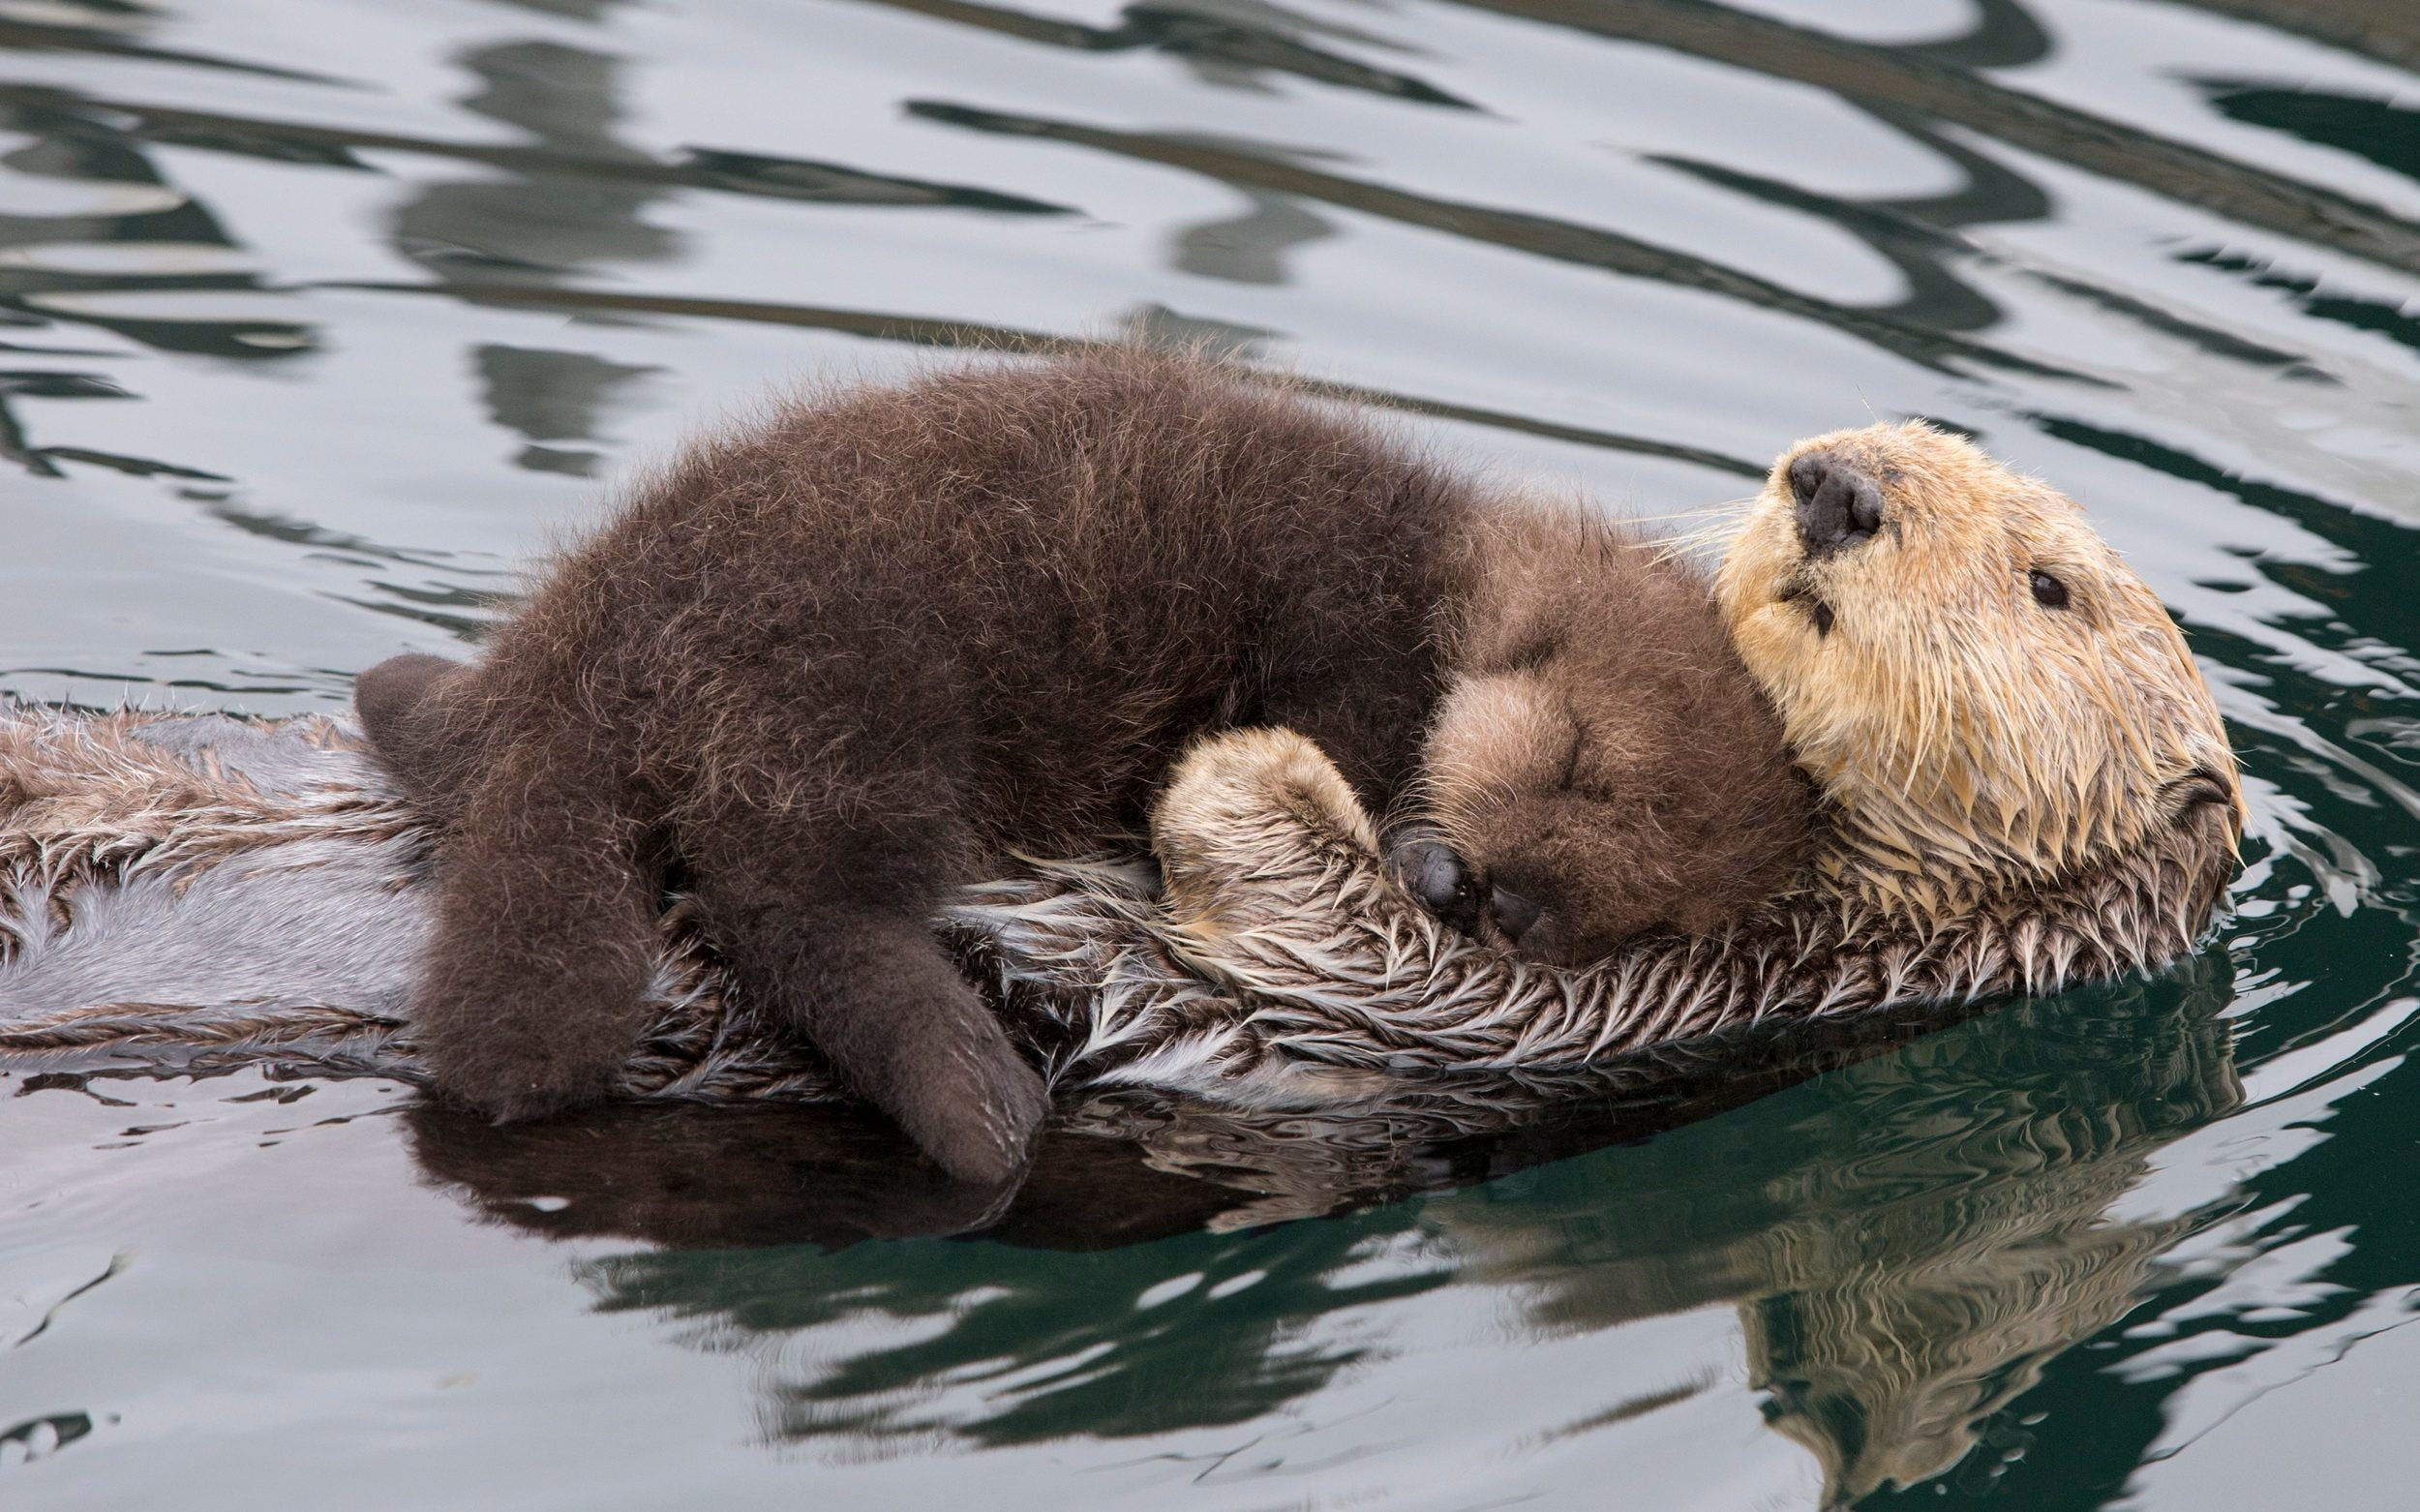 Sea Otter Cuddles Her Pup To Keep It Dry And Warm While It Sleeps